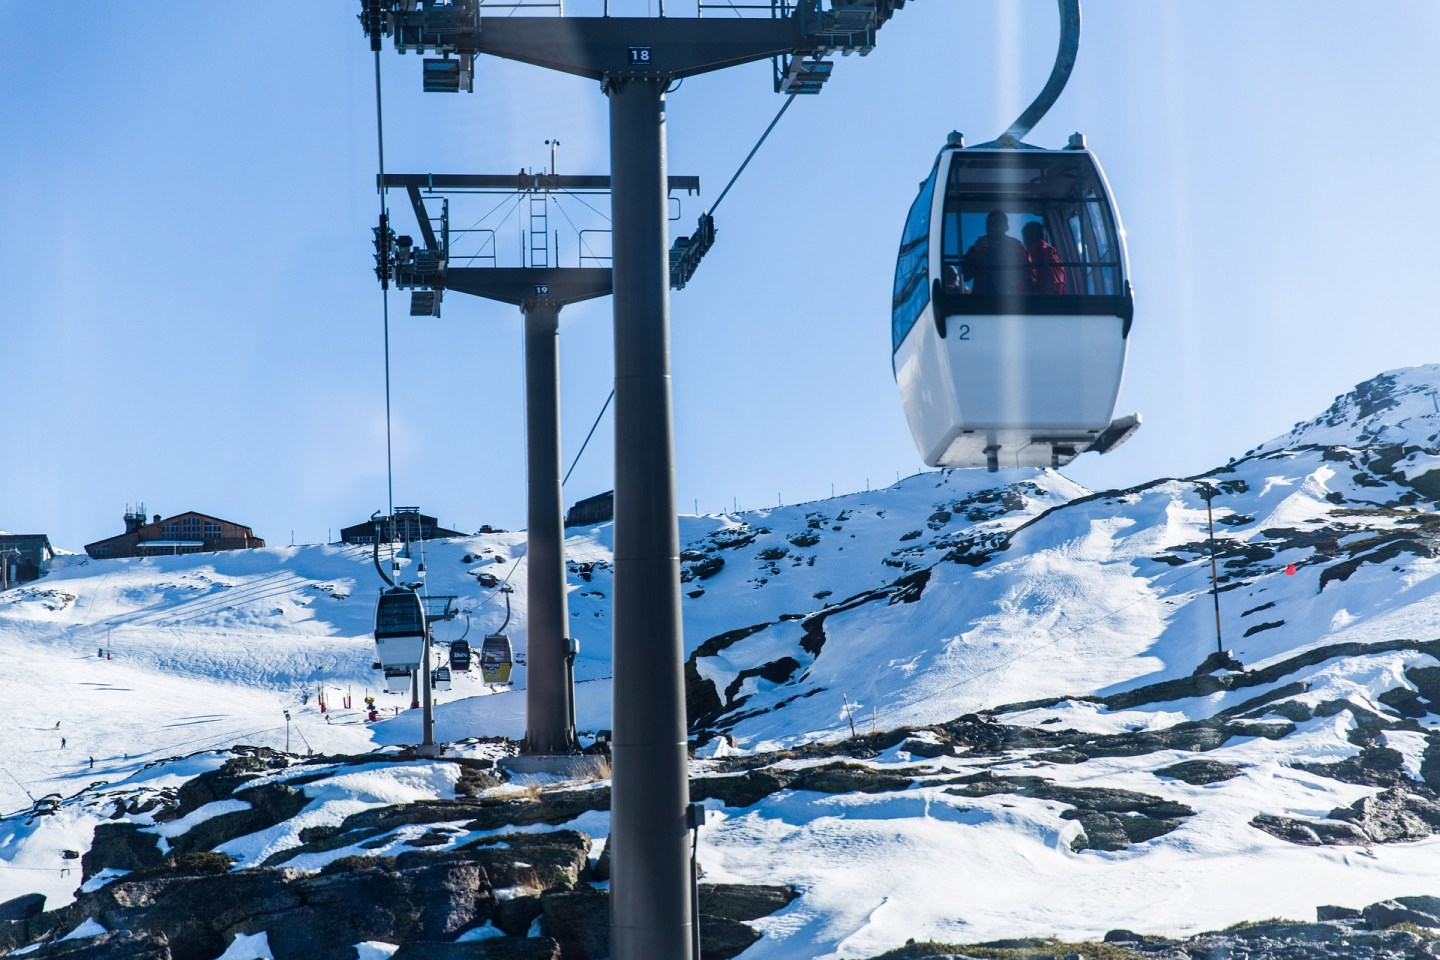 Snow covered mountains and ski resorts in Spain